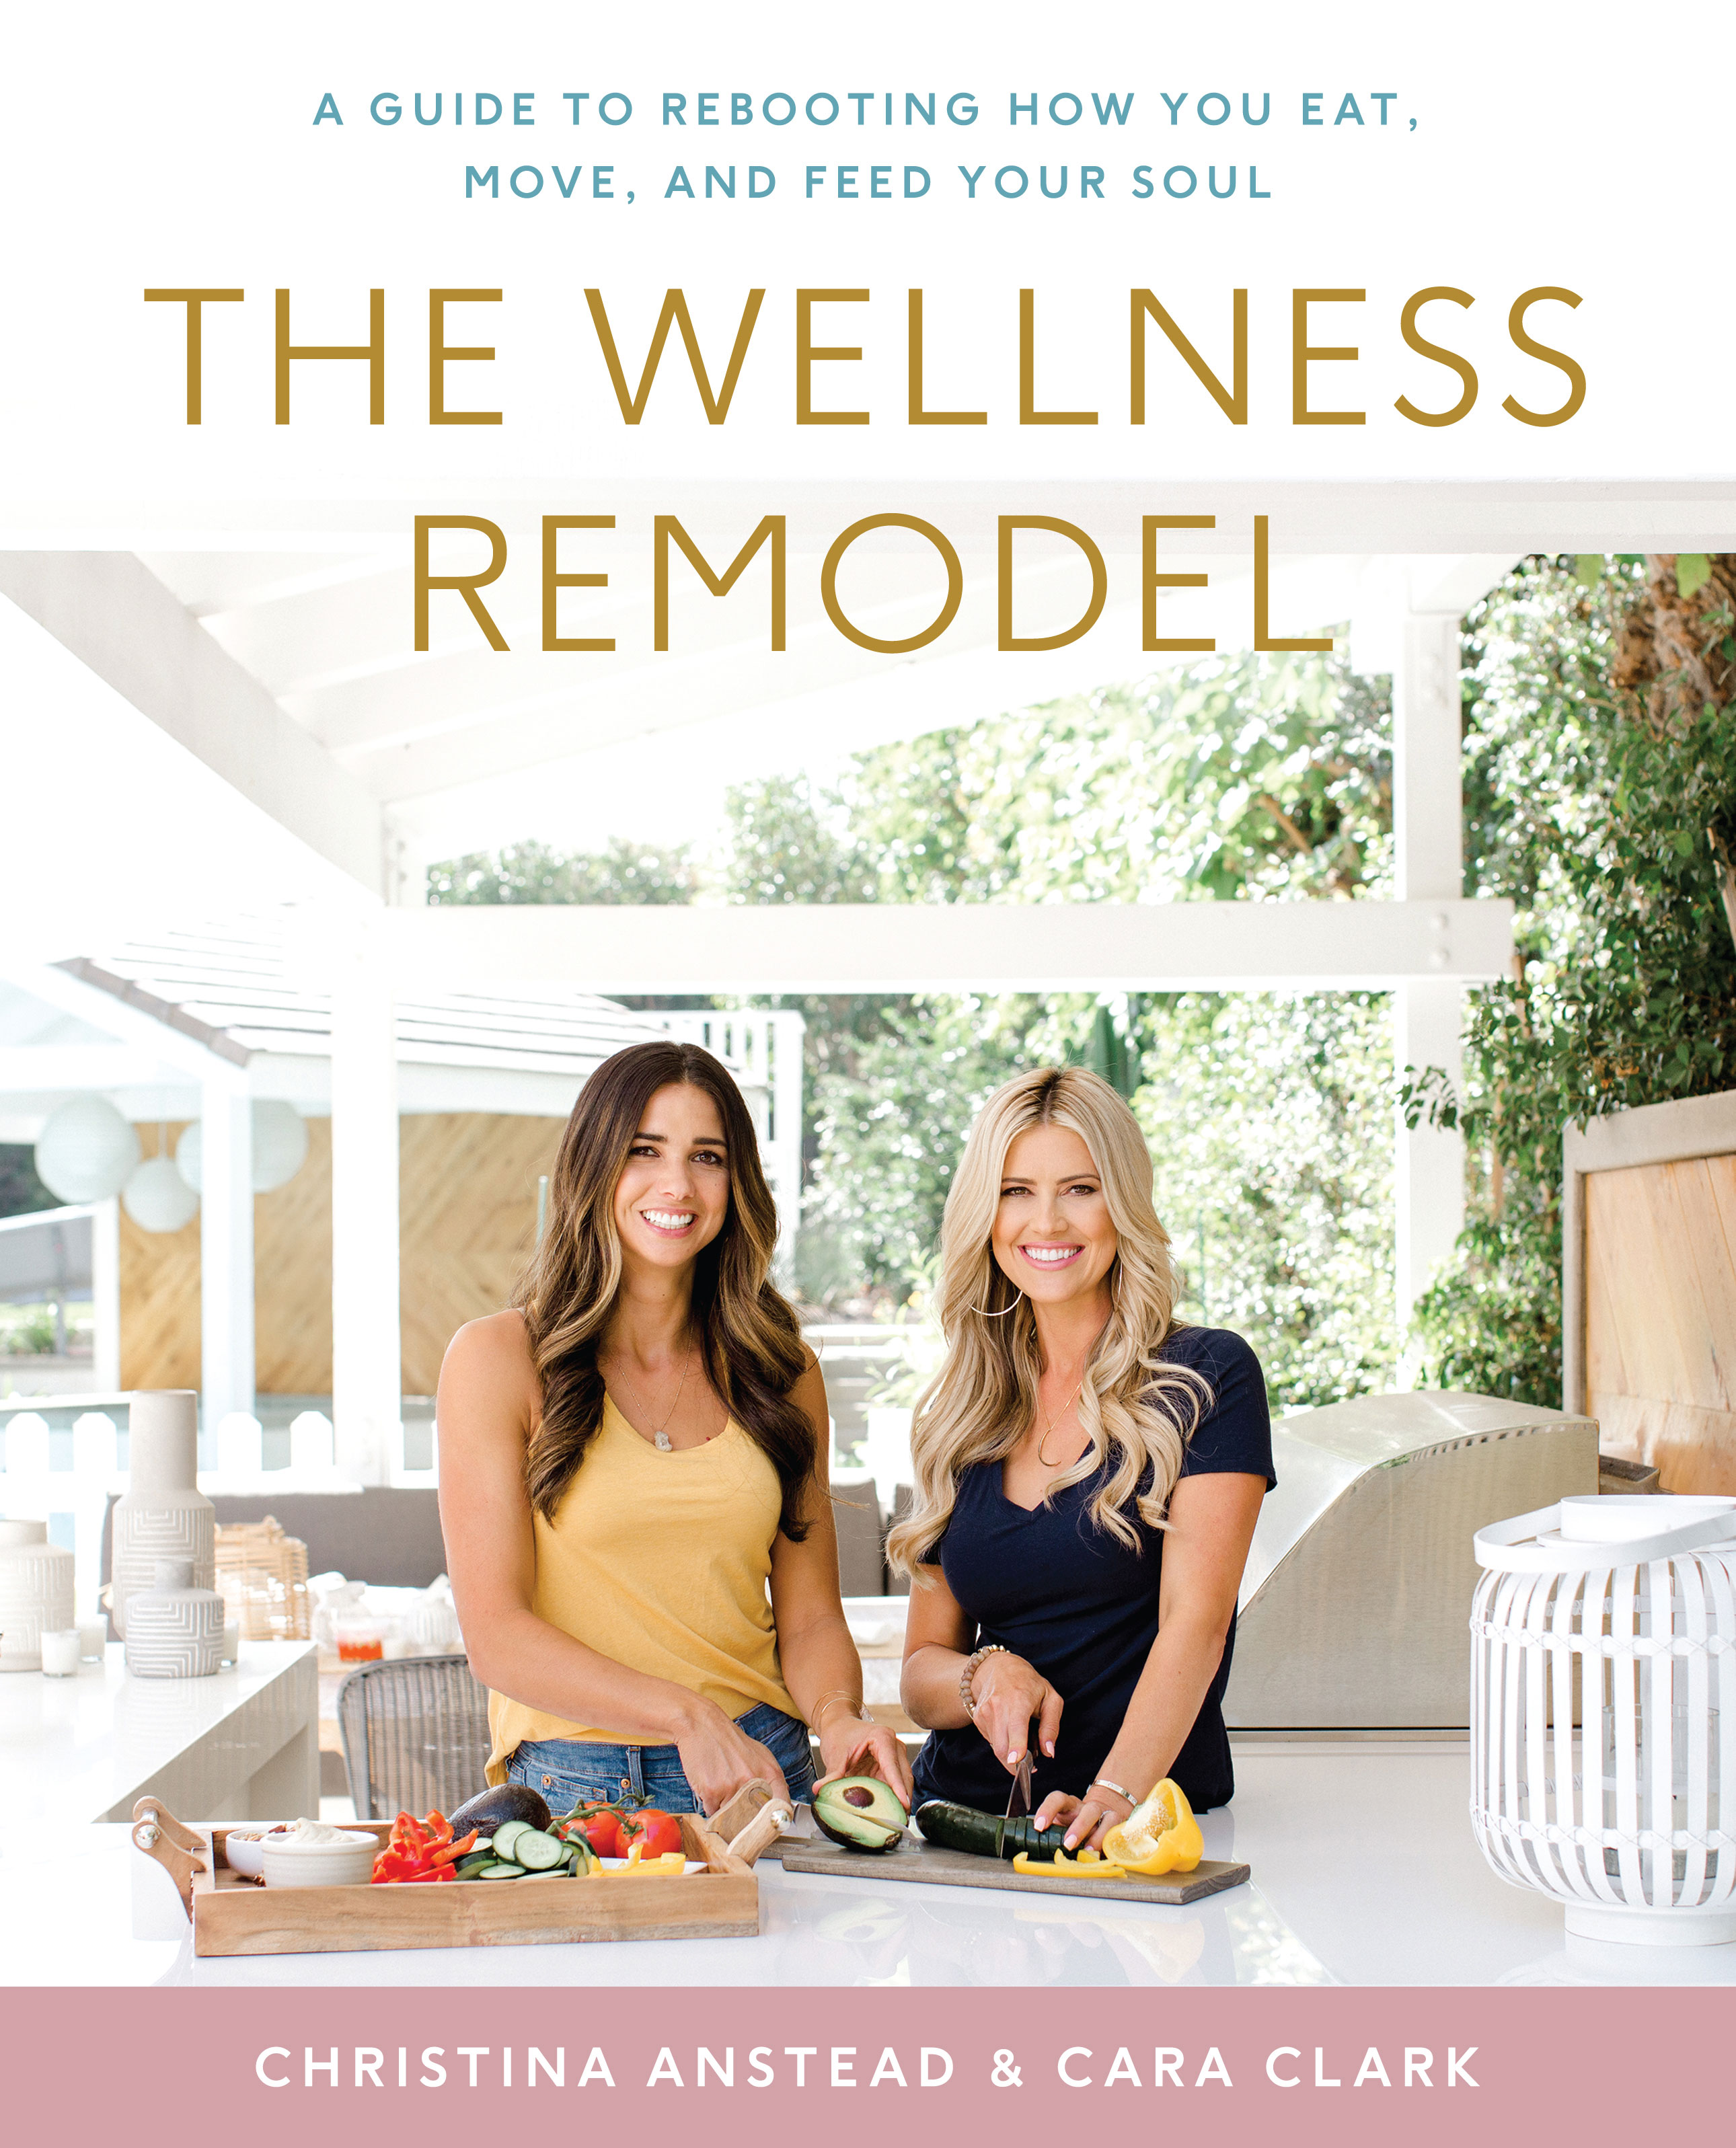 The Wellness Remodel Book Christina Anstead Admits Her Diet and Workouts Have Been a Little Bit Different Amid Quarantine